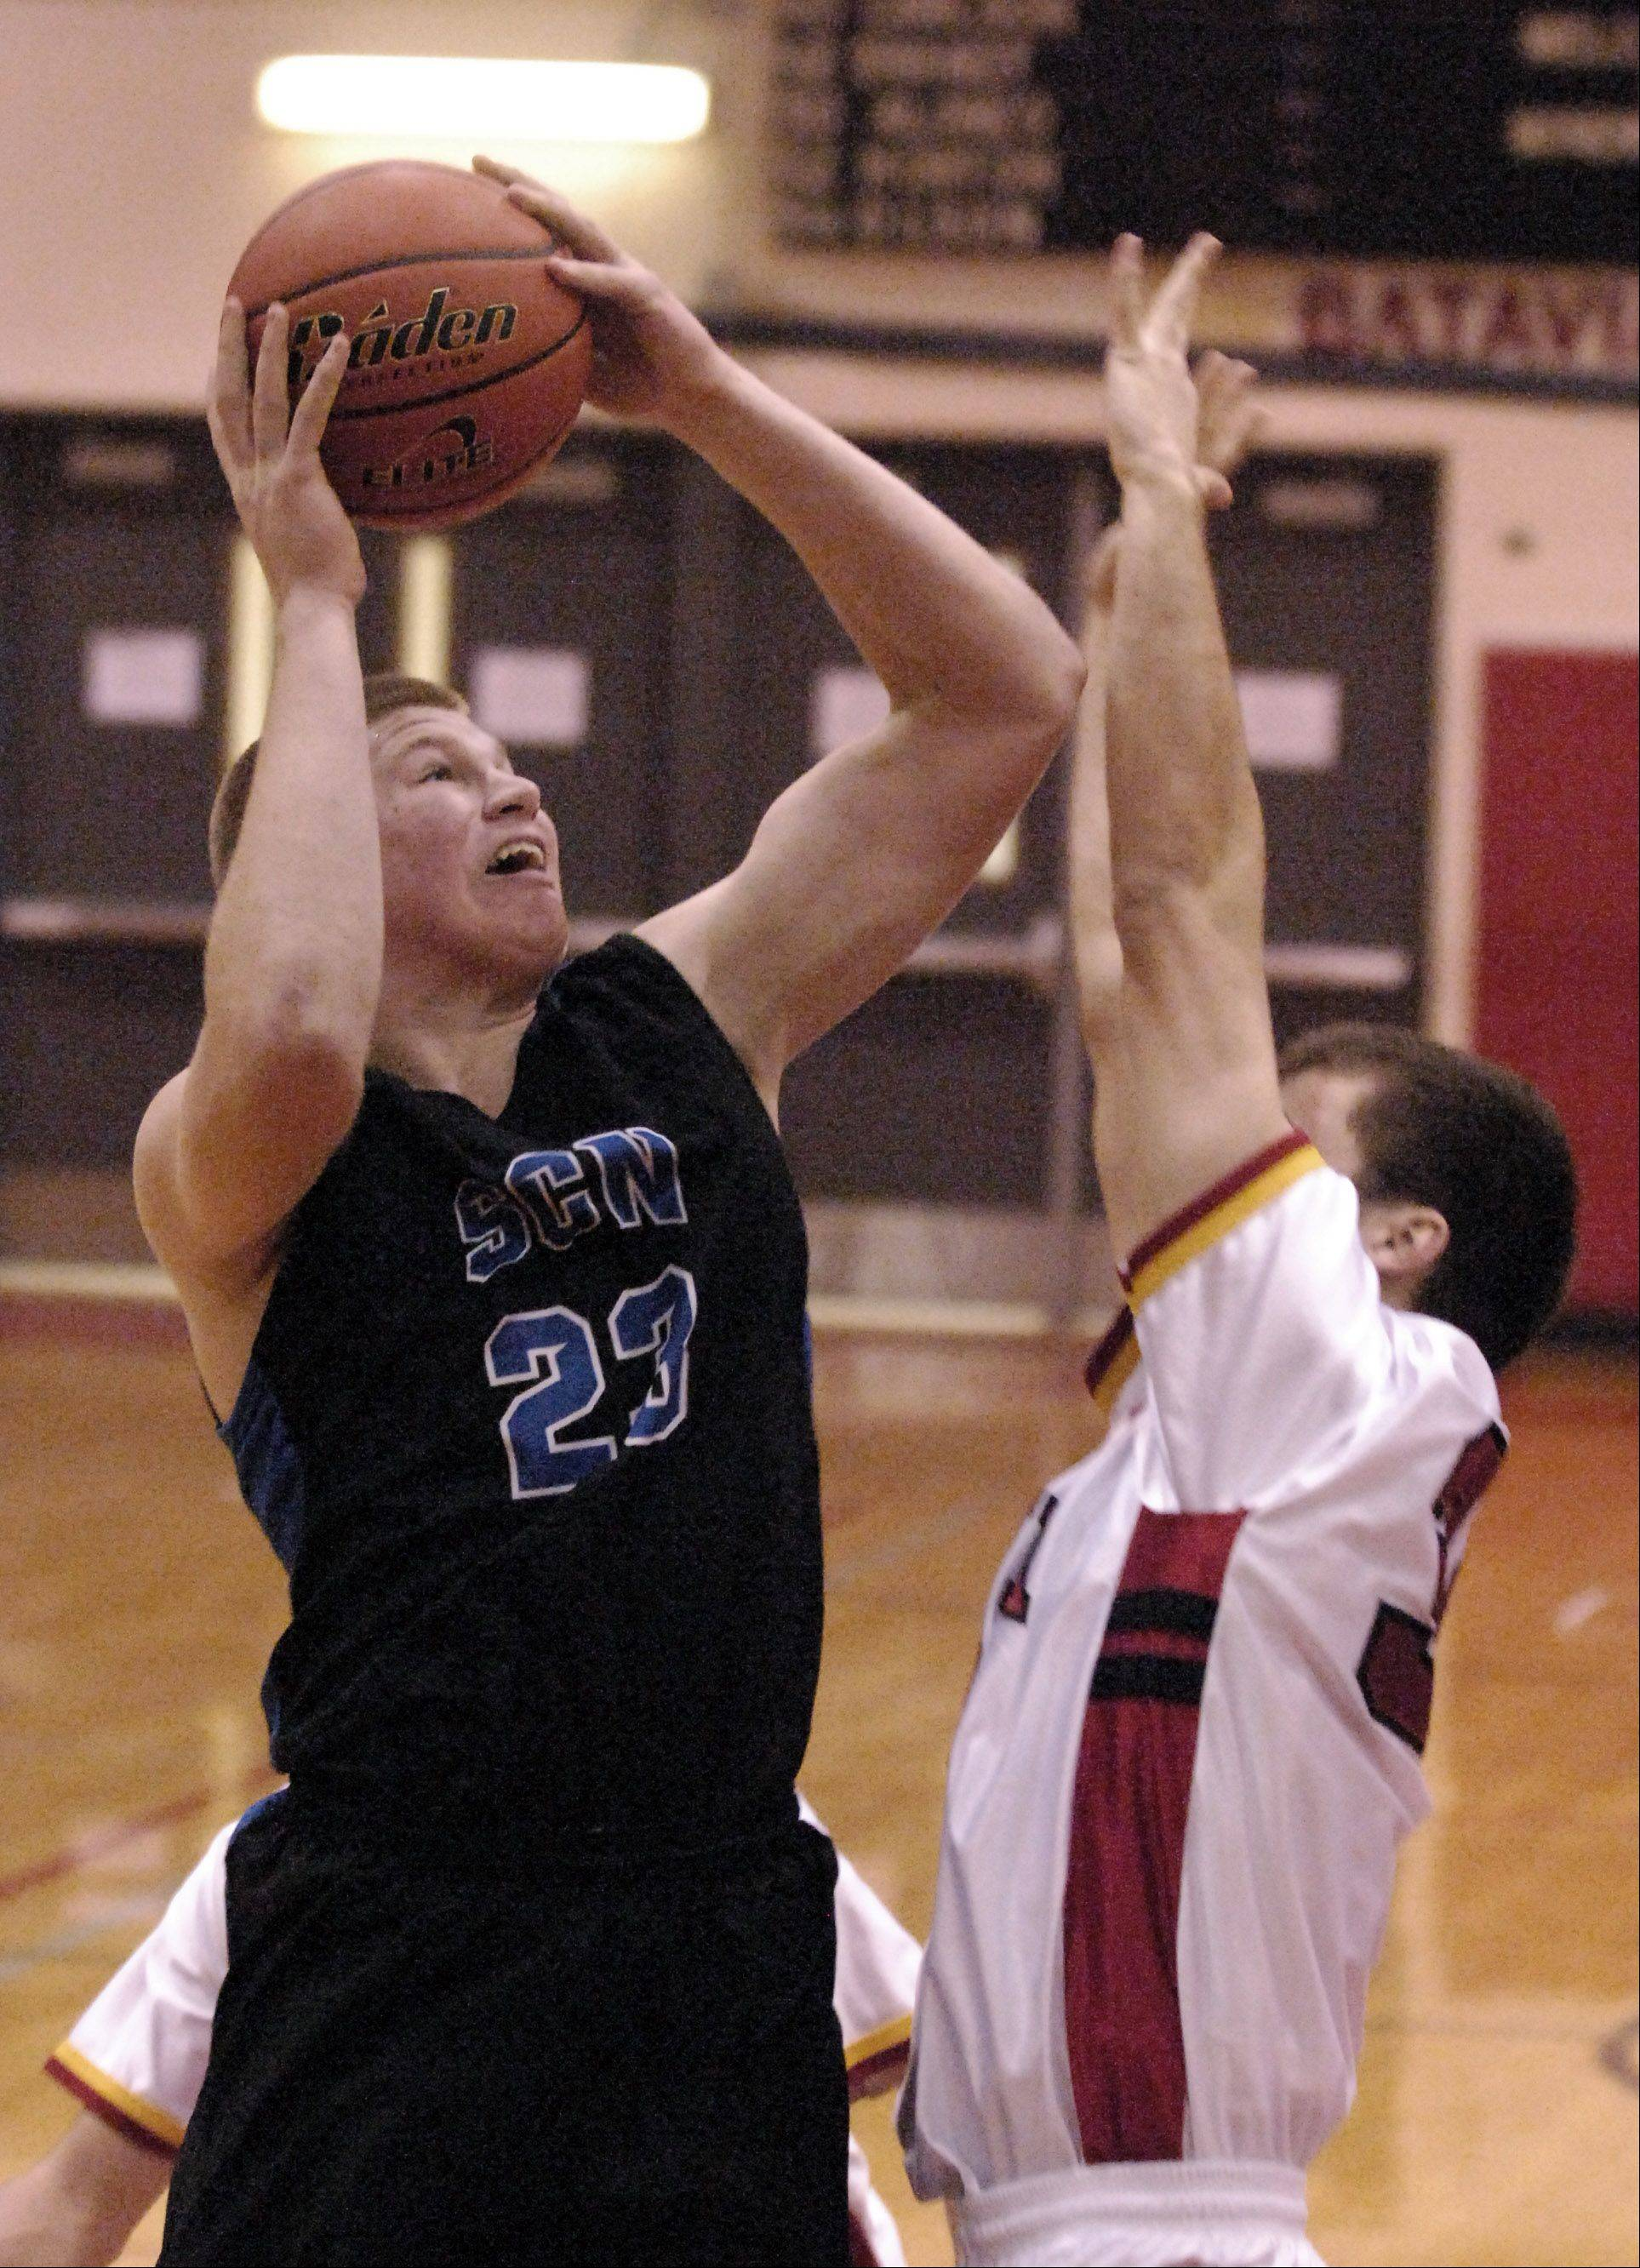 St. Charles North's Justin Stanko goes up and scores against Batavia during Thursday's game at Batavia.